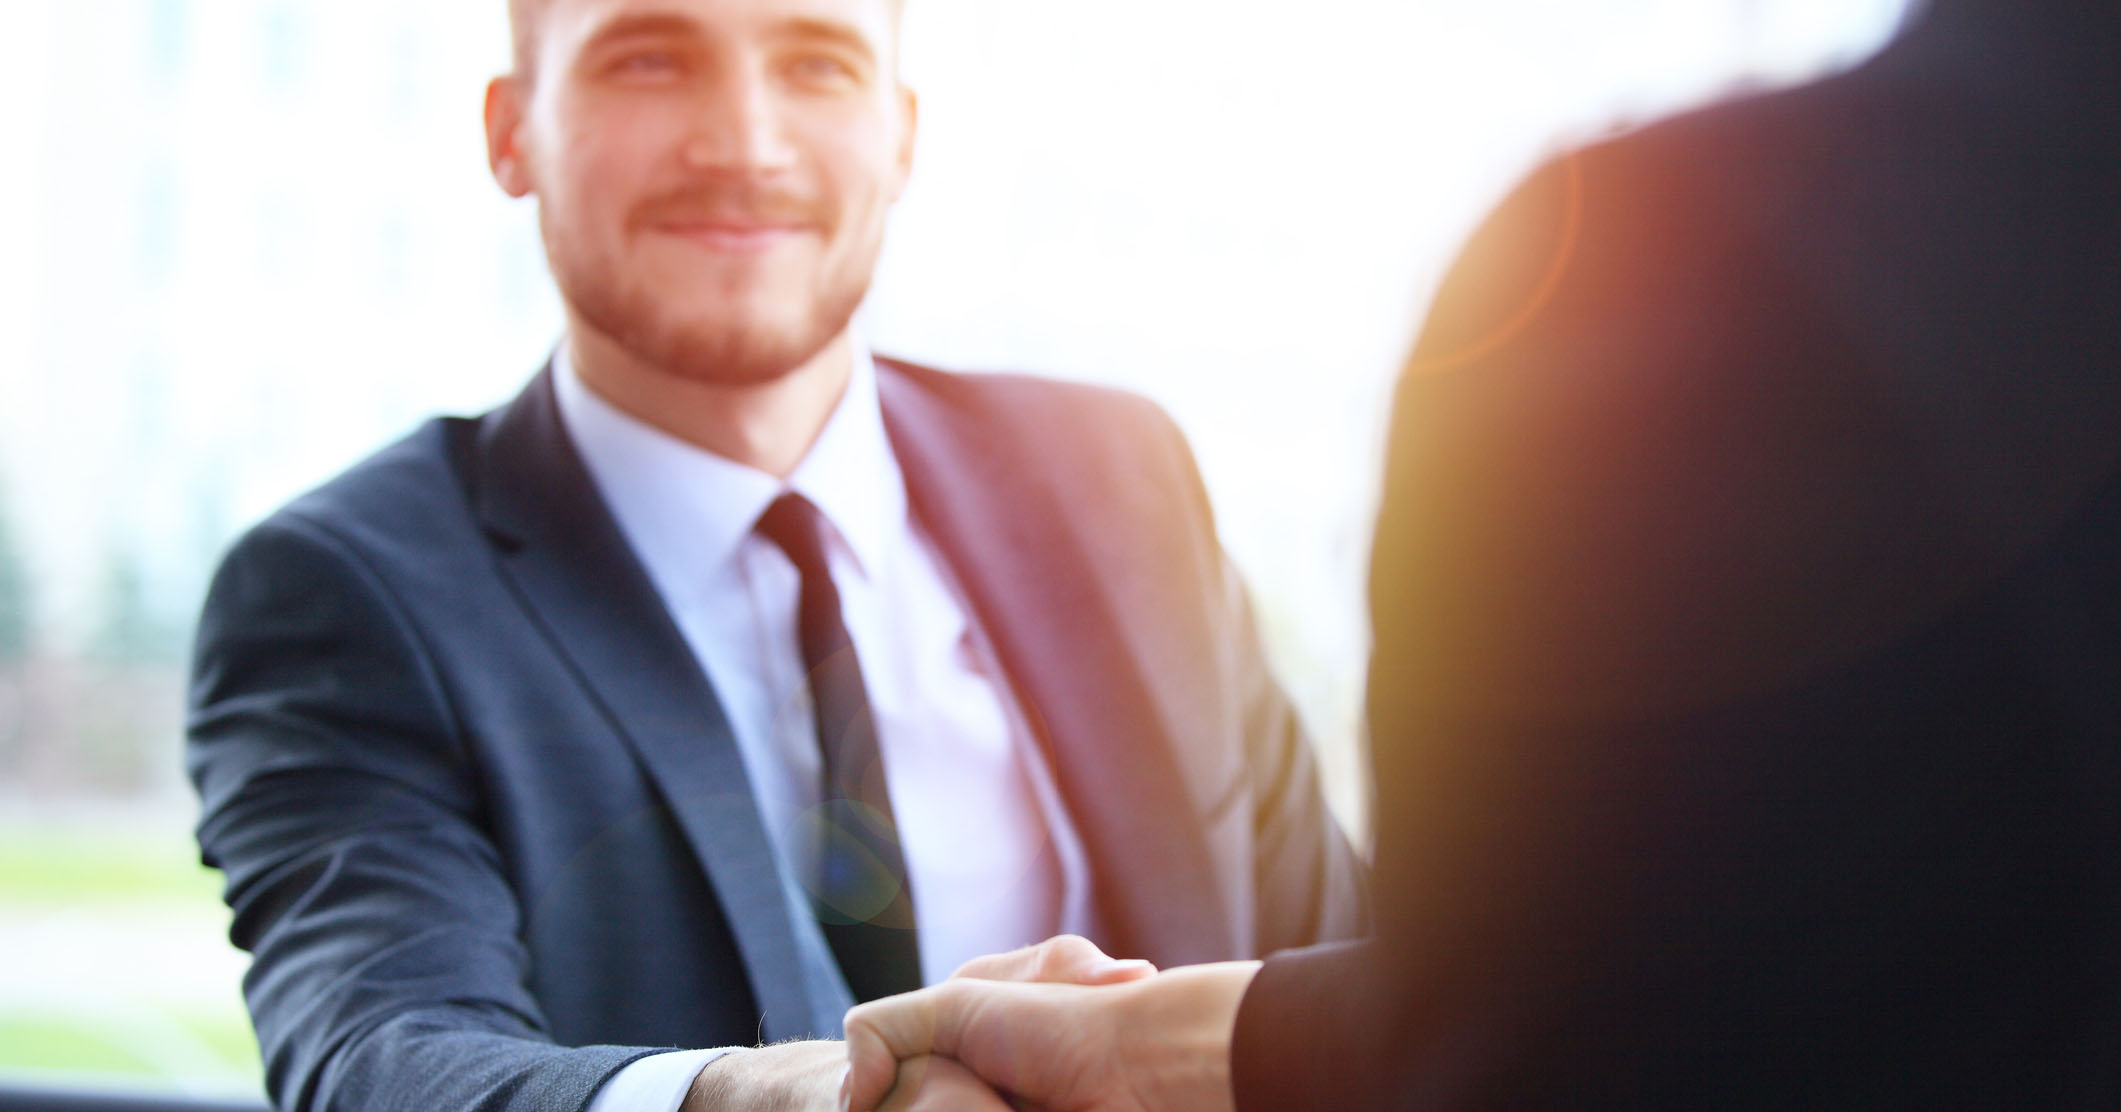 How to Make a Great First Impression with Literally Everyone You Meet